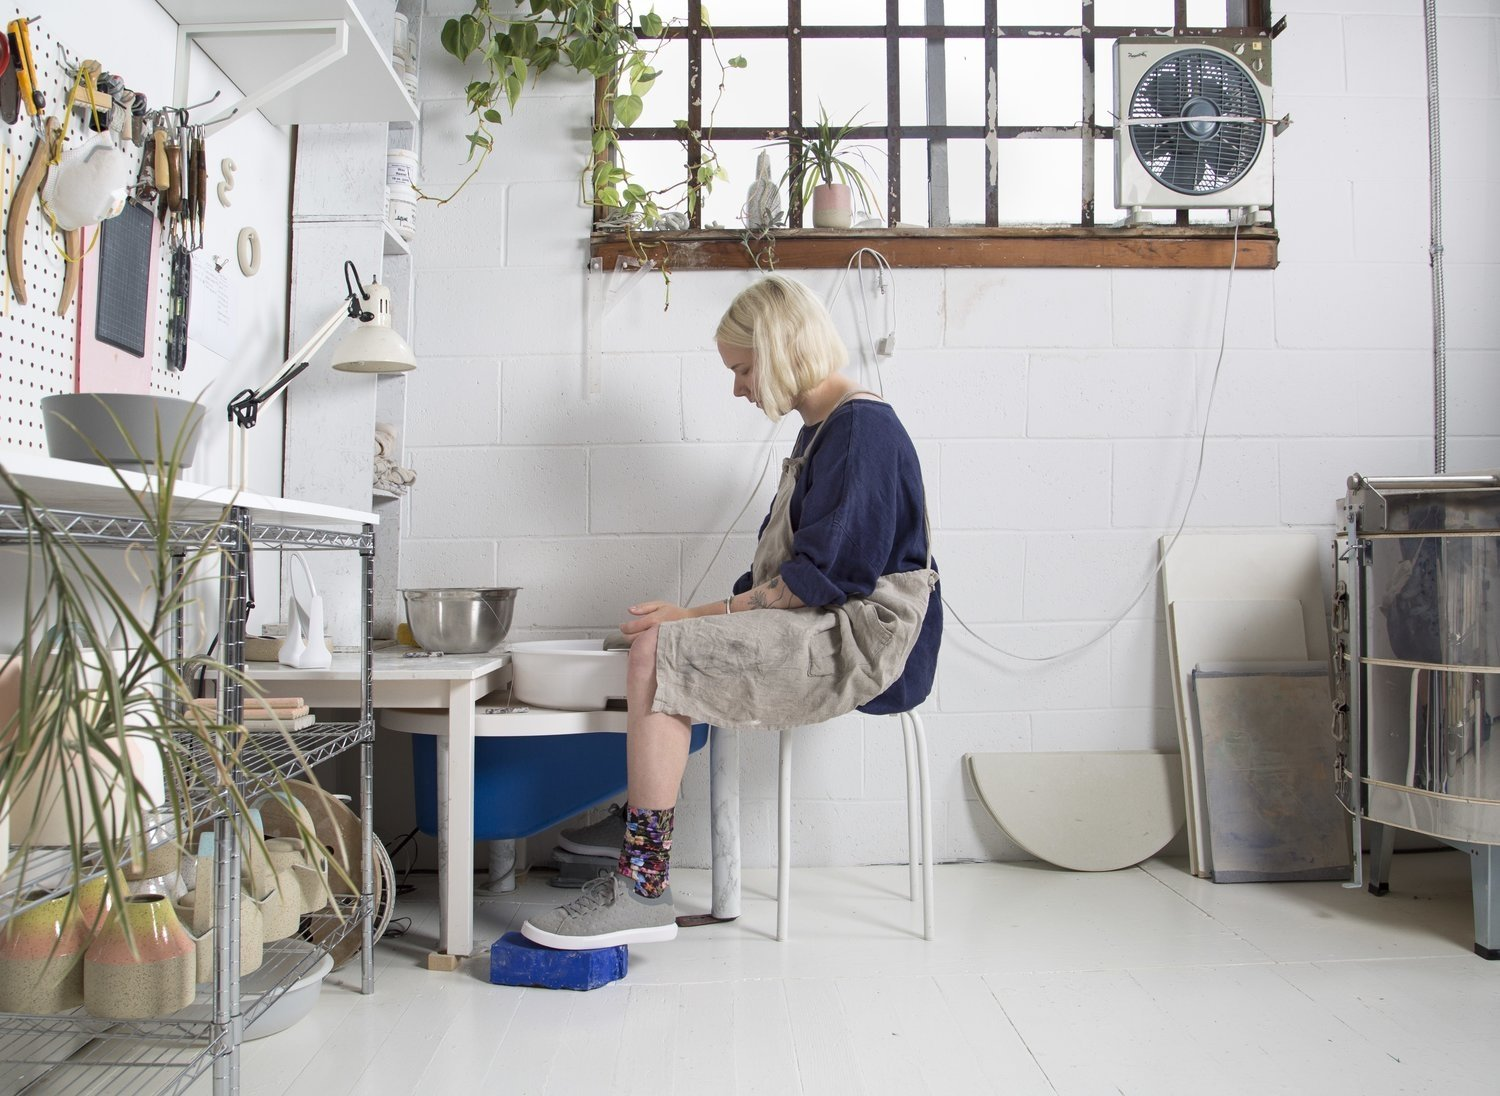 Woman with apron sitting on stool making pottery